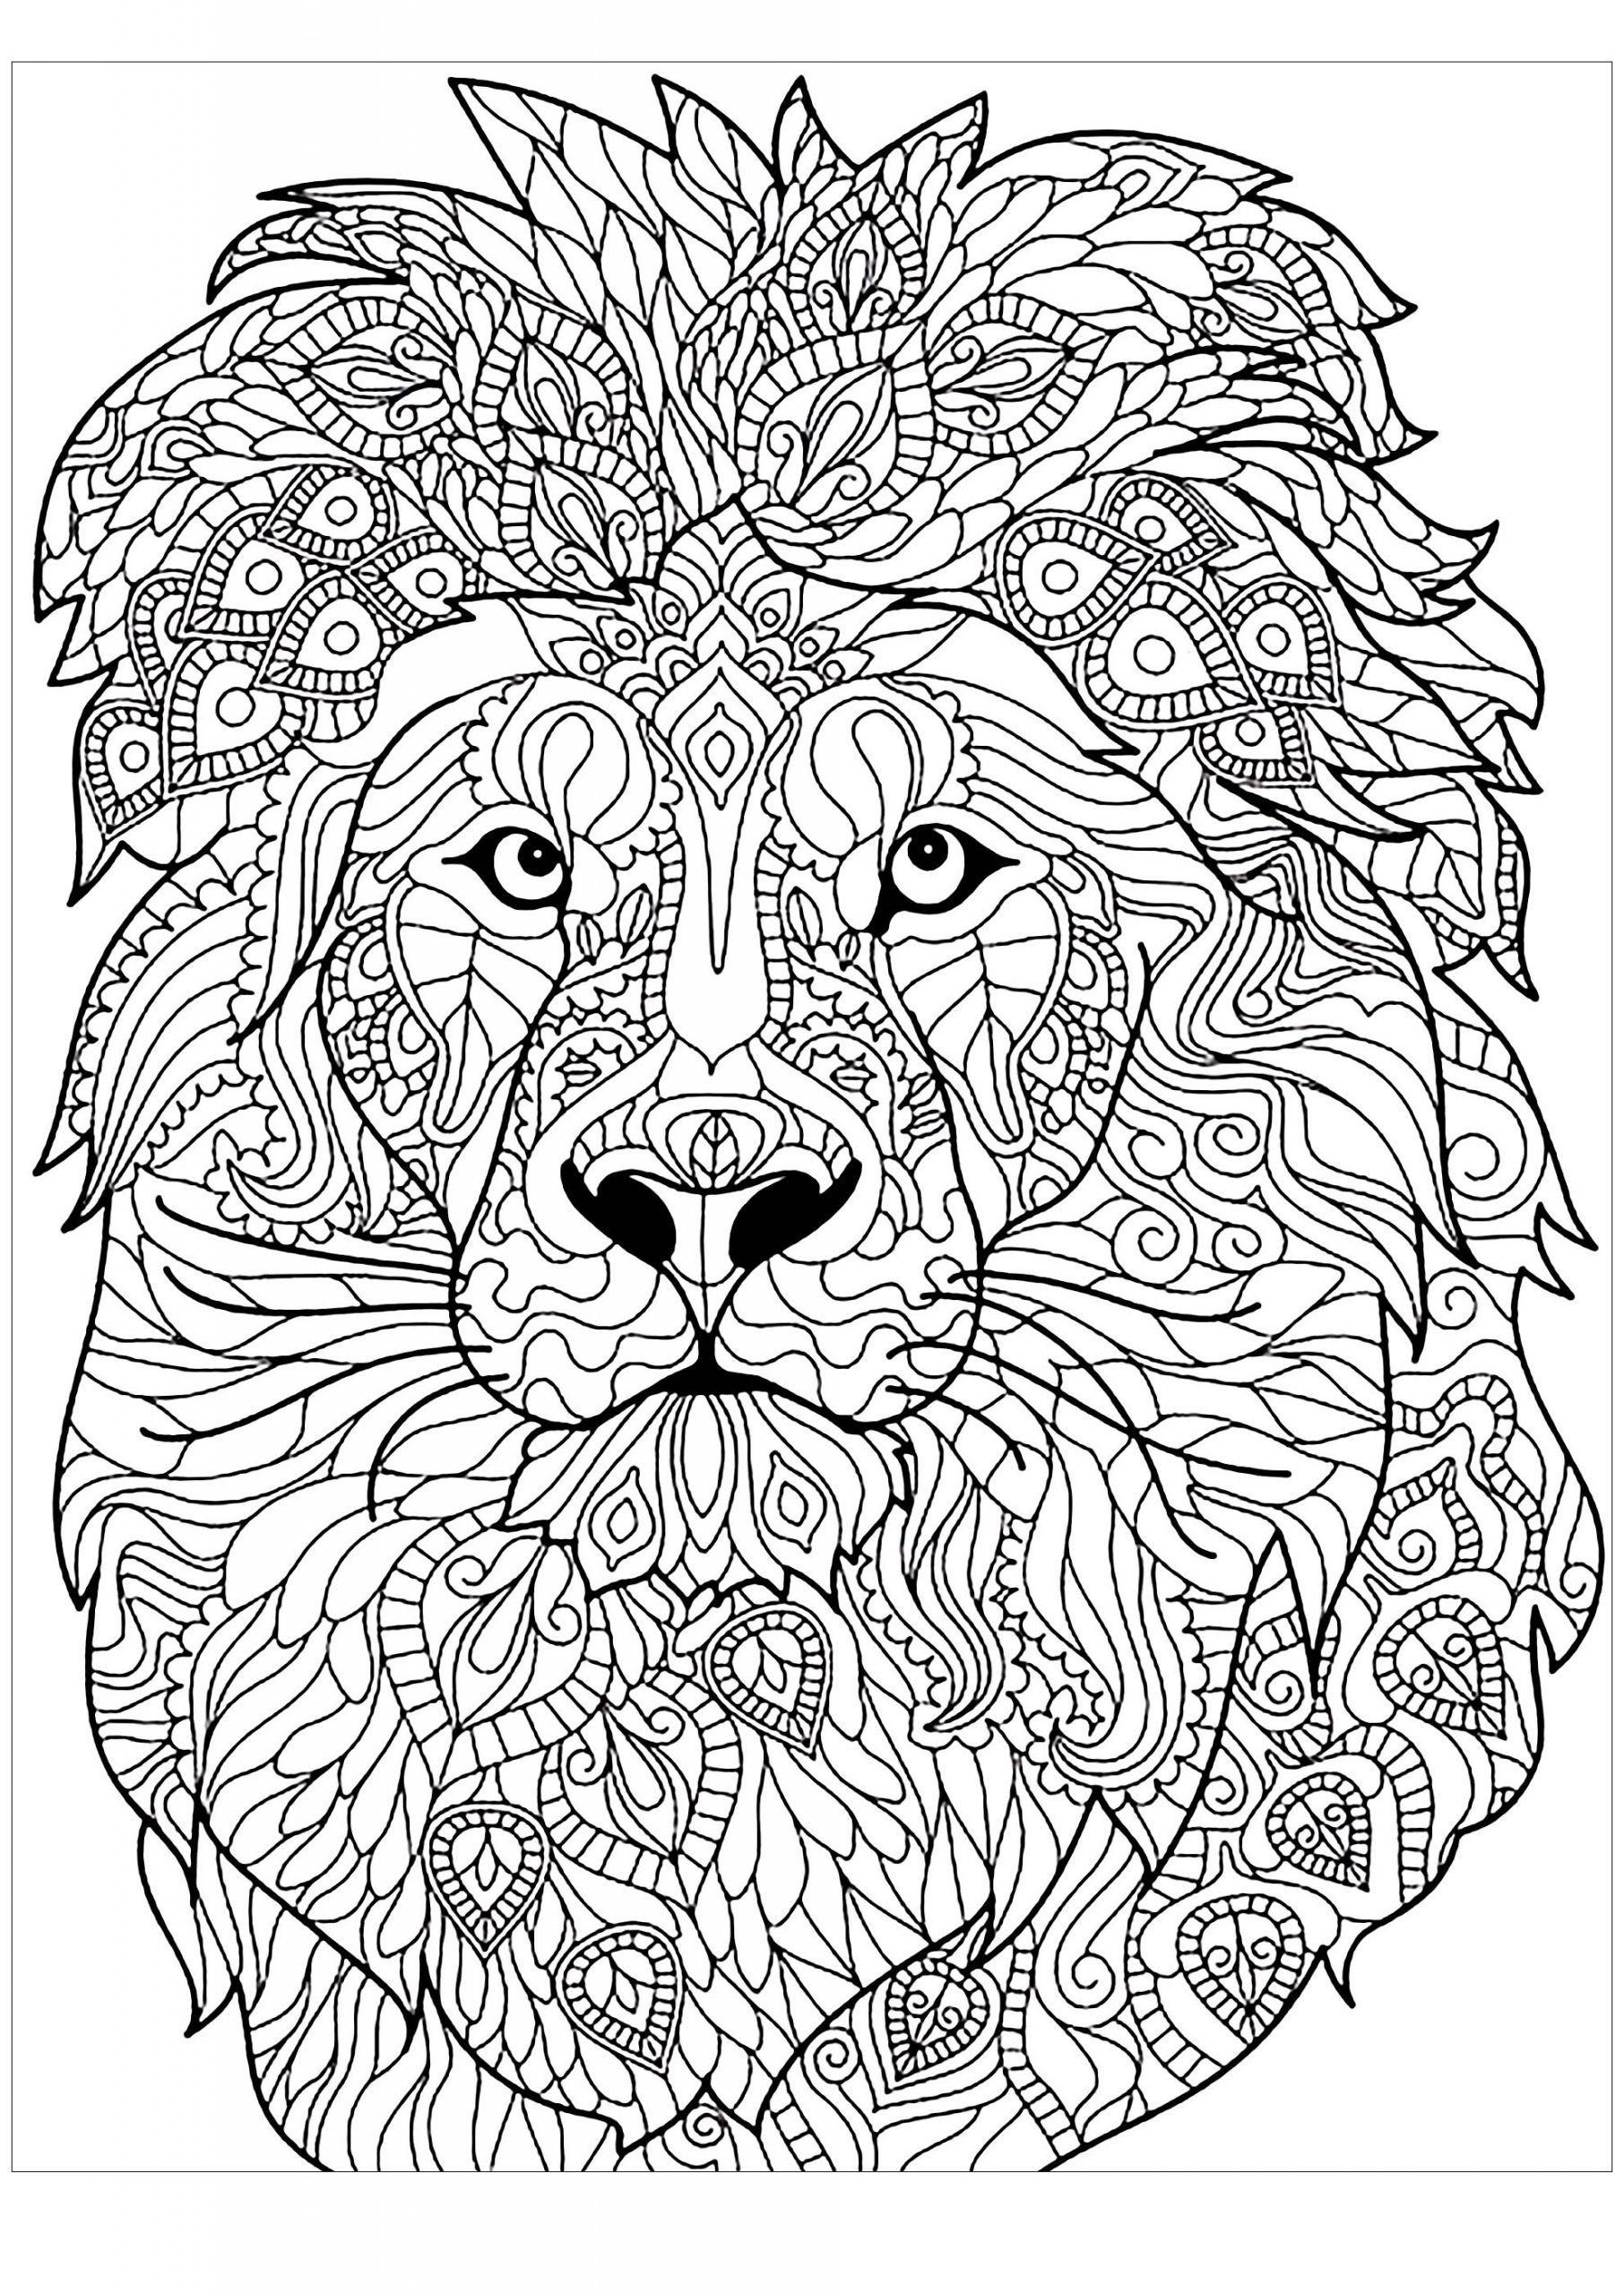 hard lion coloring pages animal coloring pages free coloring pages printable for lion coloring pages hard